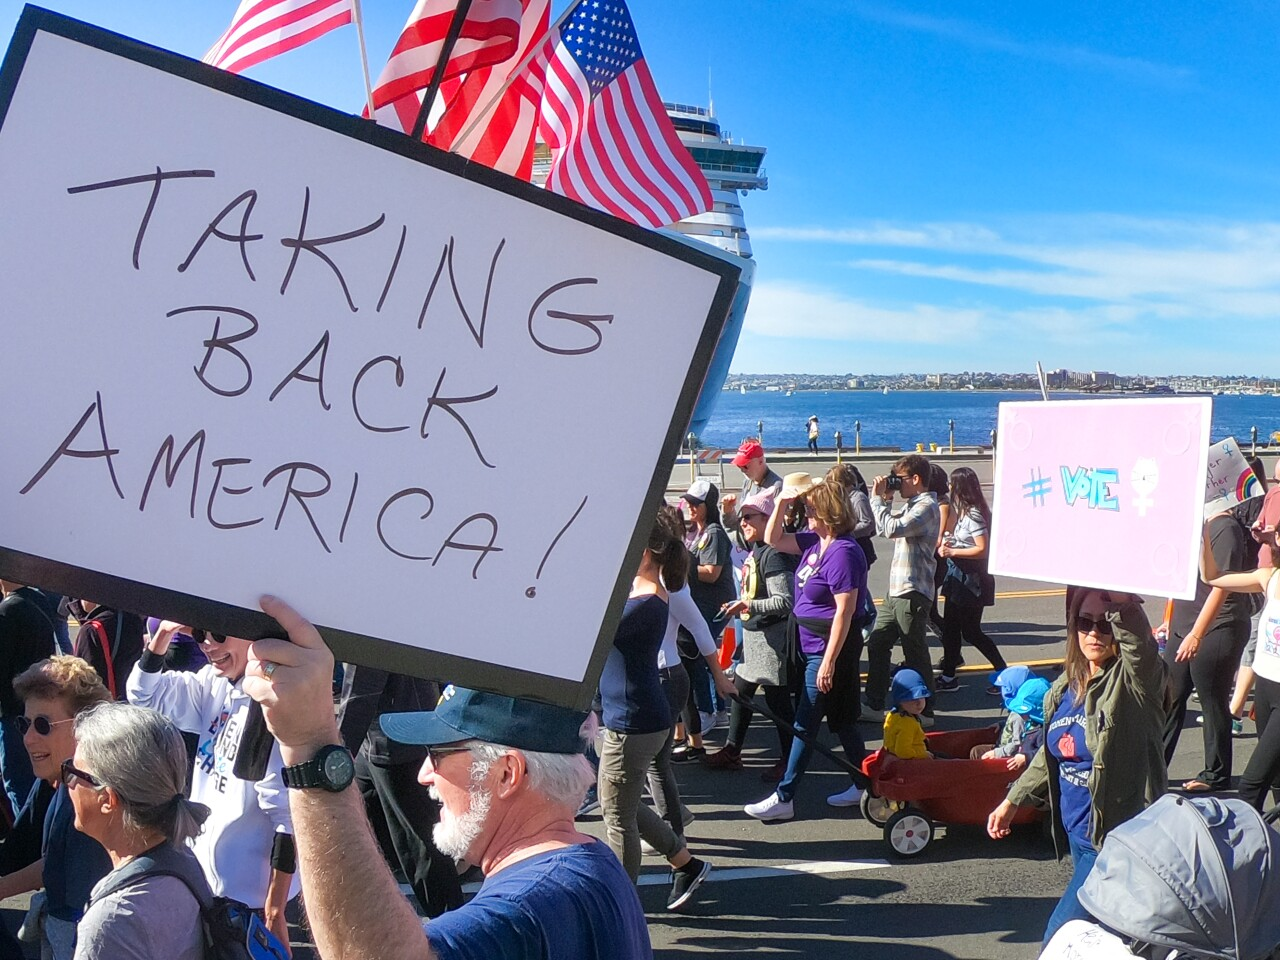 Thousands of people walked in the fourth annual Women's March San Diego, as it made its way along North Harbor Drive on the Embarcadero, January 18, 2020 in San Diego, California. It began at the County Administration building and Waterfront Park.